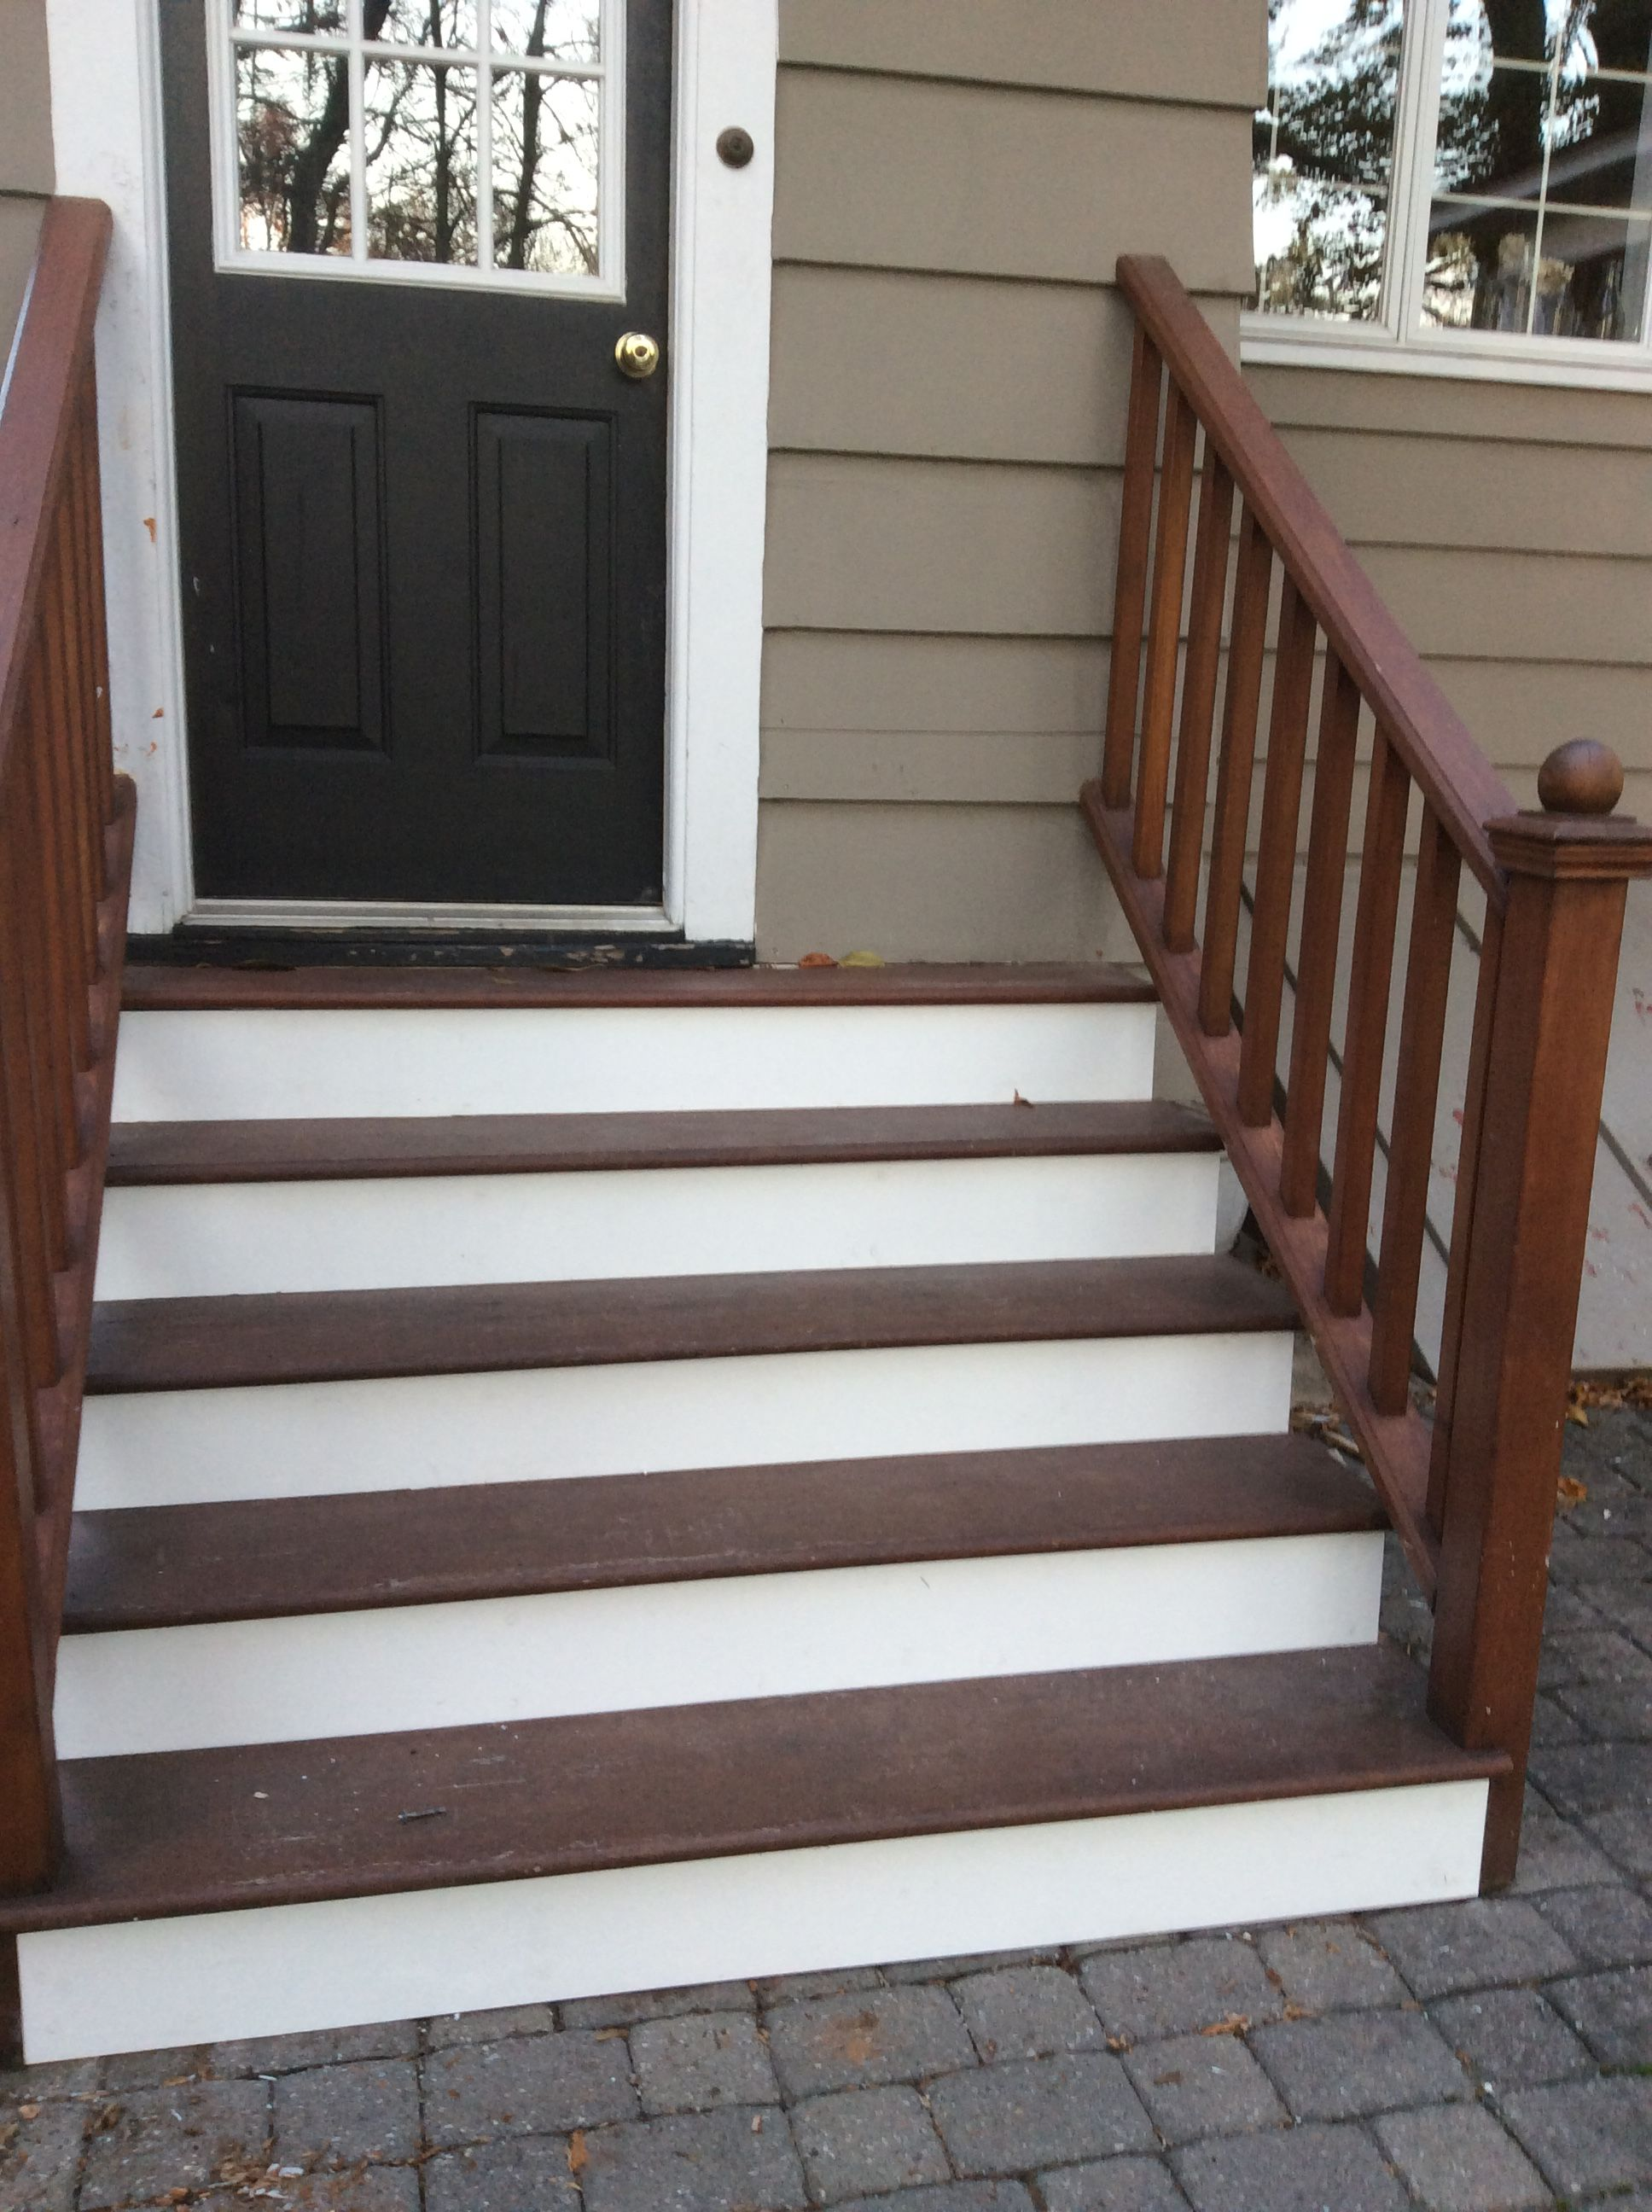 Stair Riser Azek Replacements Westfield Stair Risers Stairs